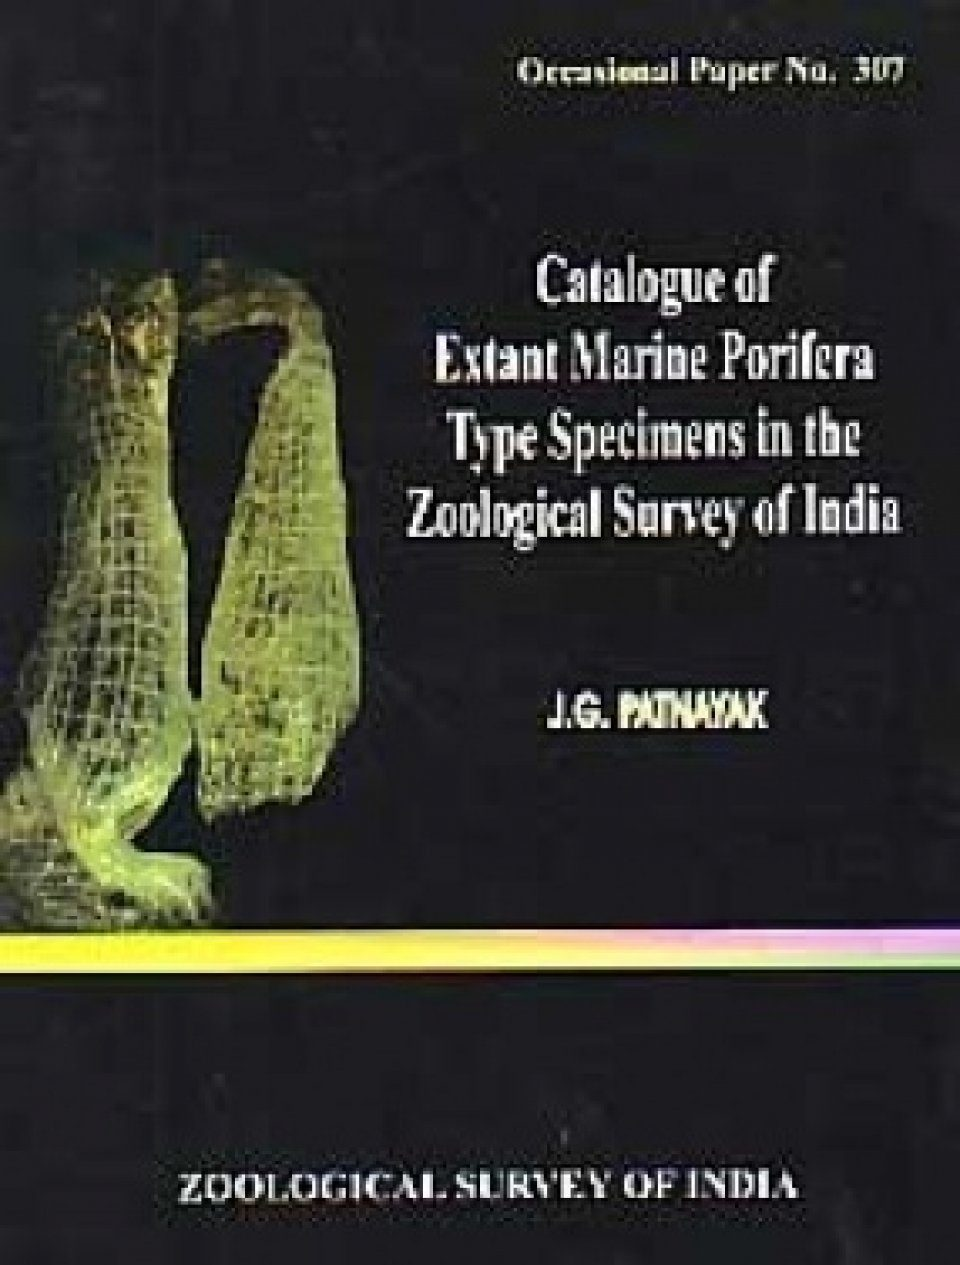 Catalogue of Extant Marine Porifera Type Specimens in the Zoological Survey of India